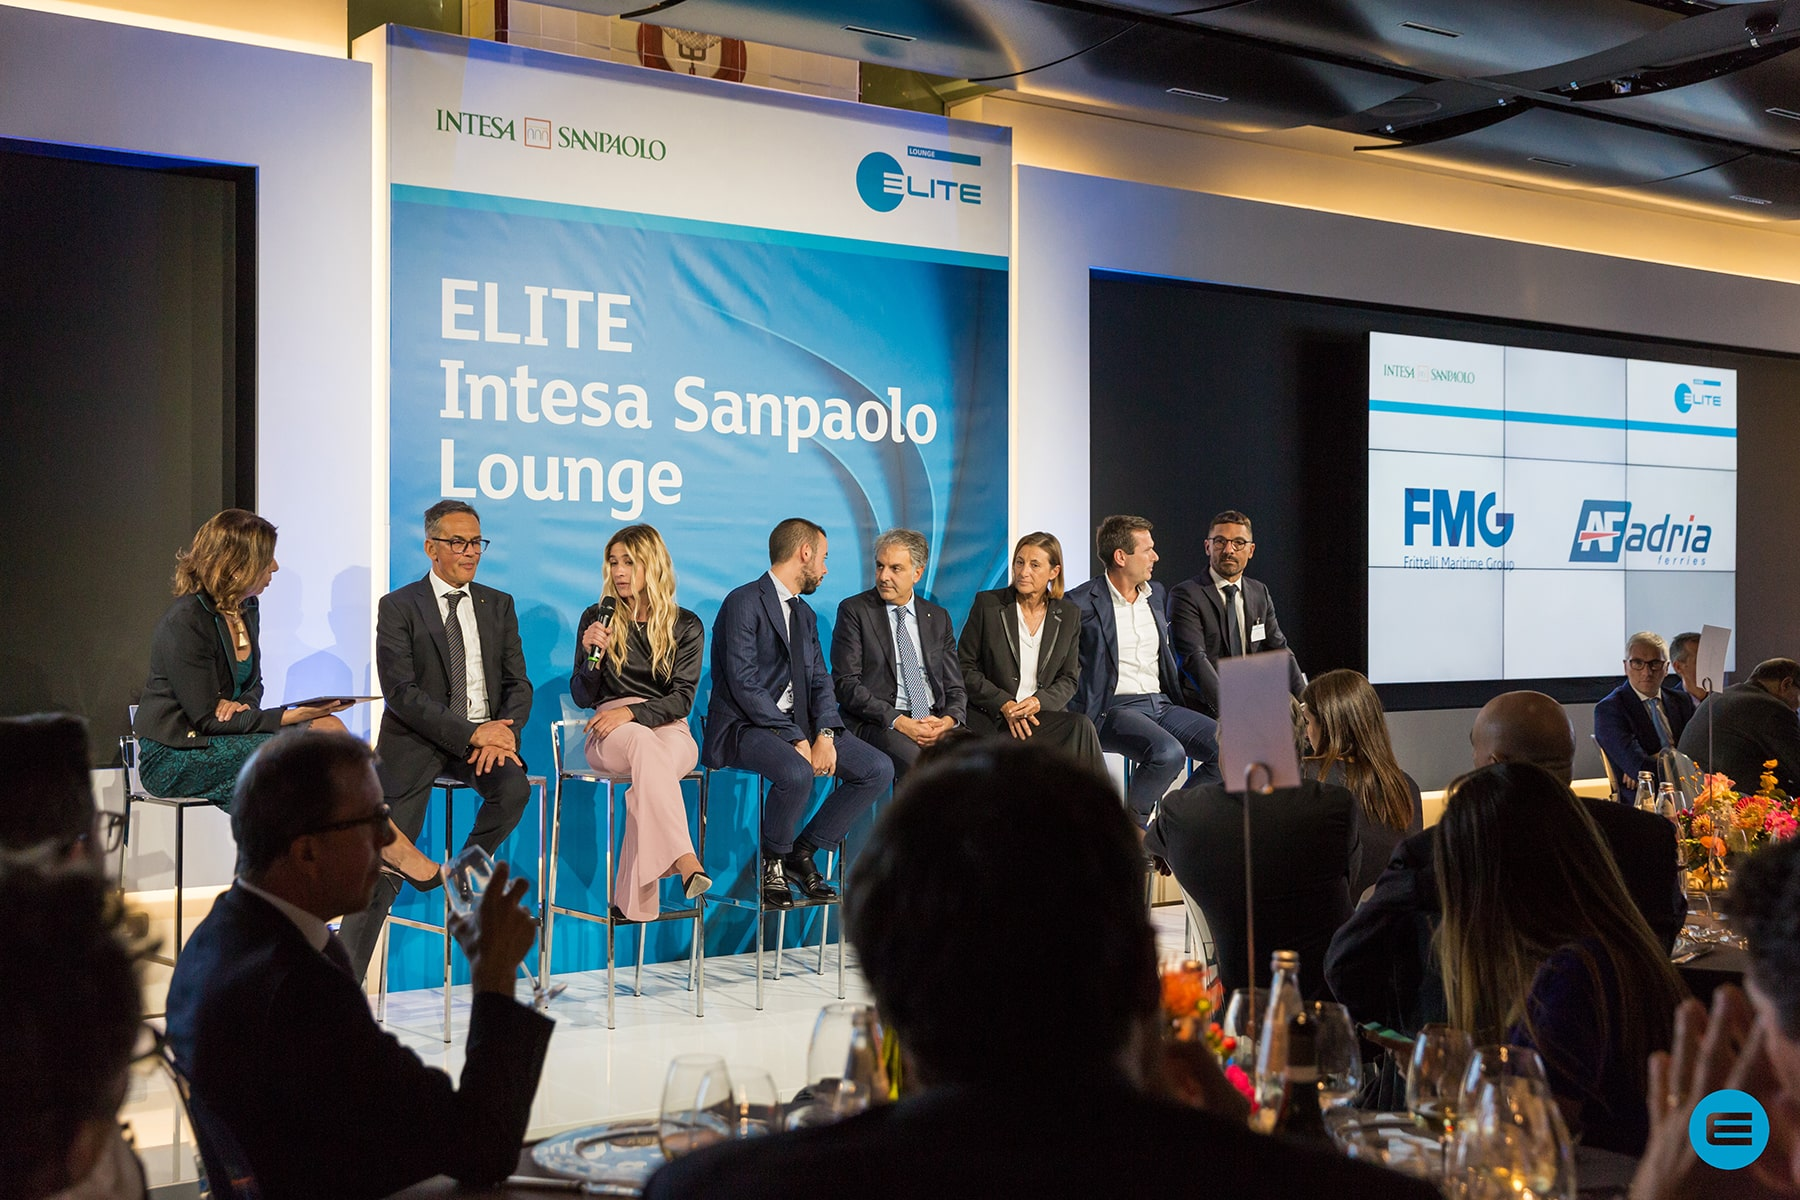 FMG is participating in the ELITE project